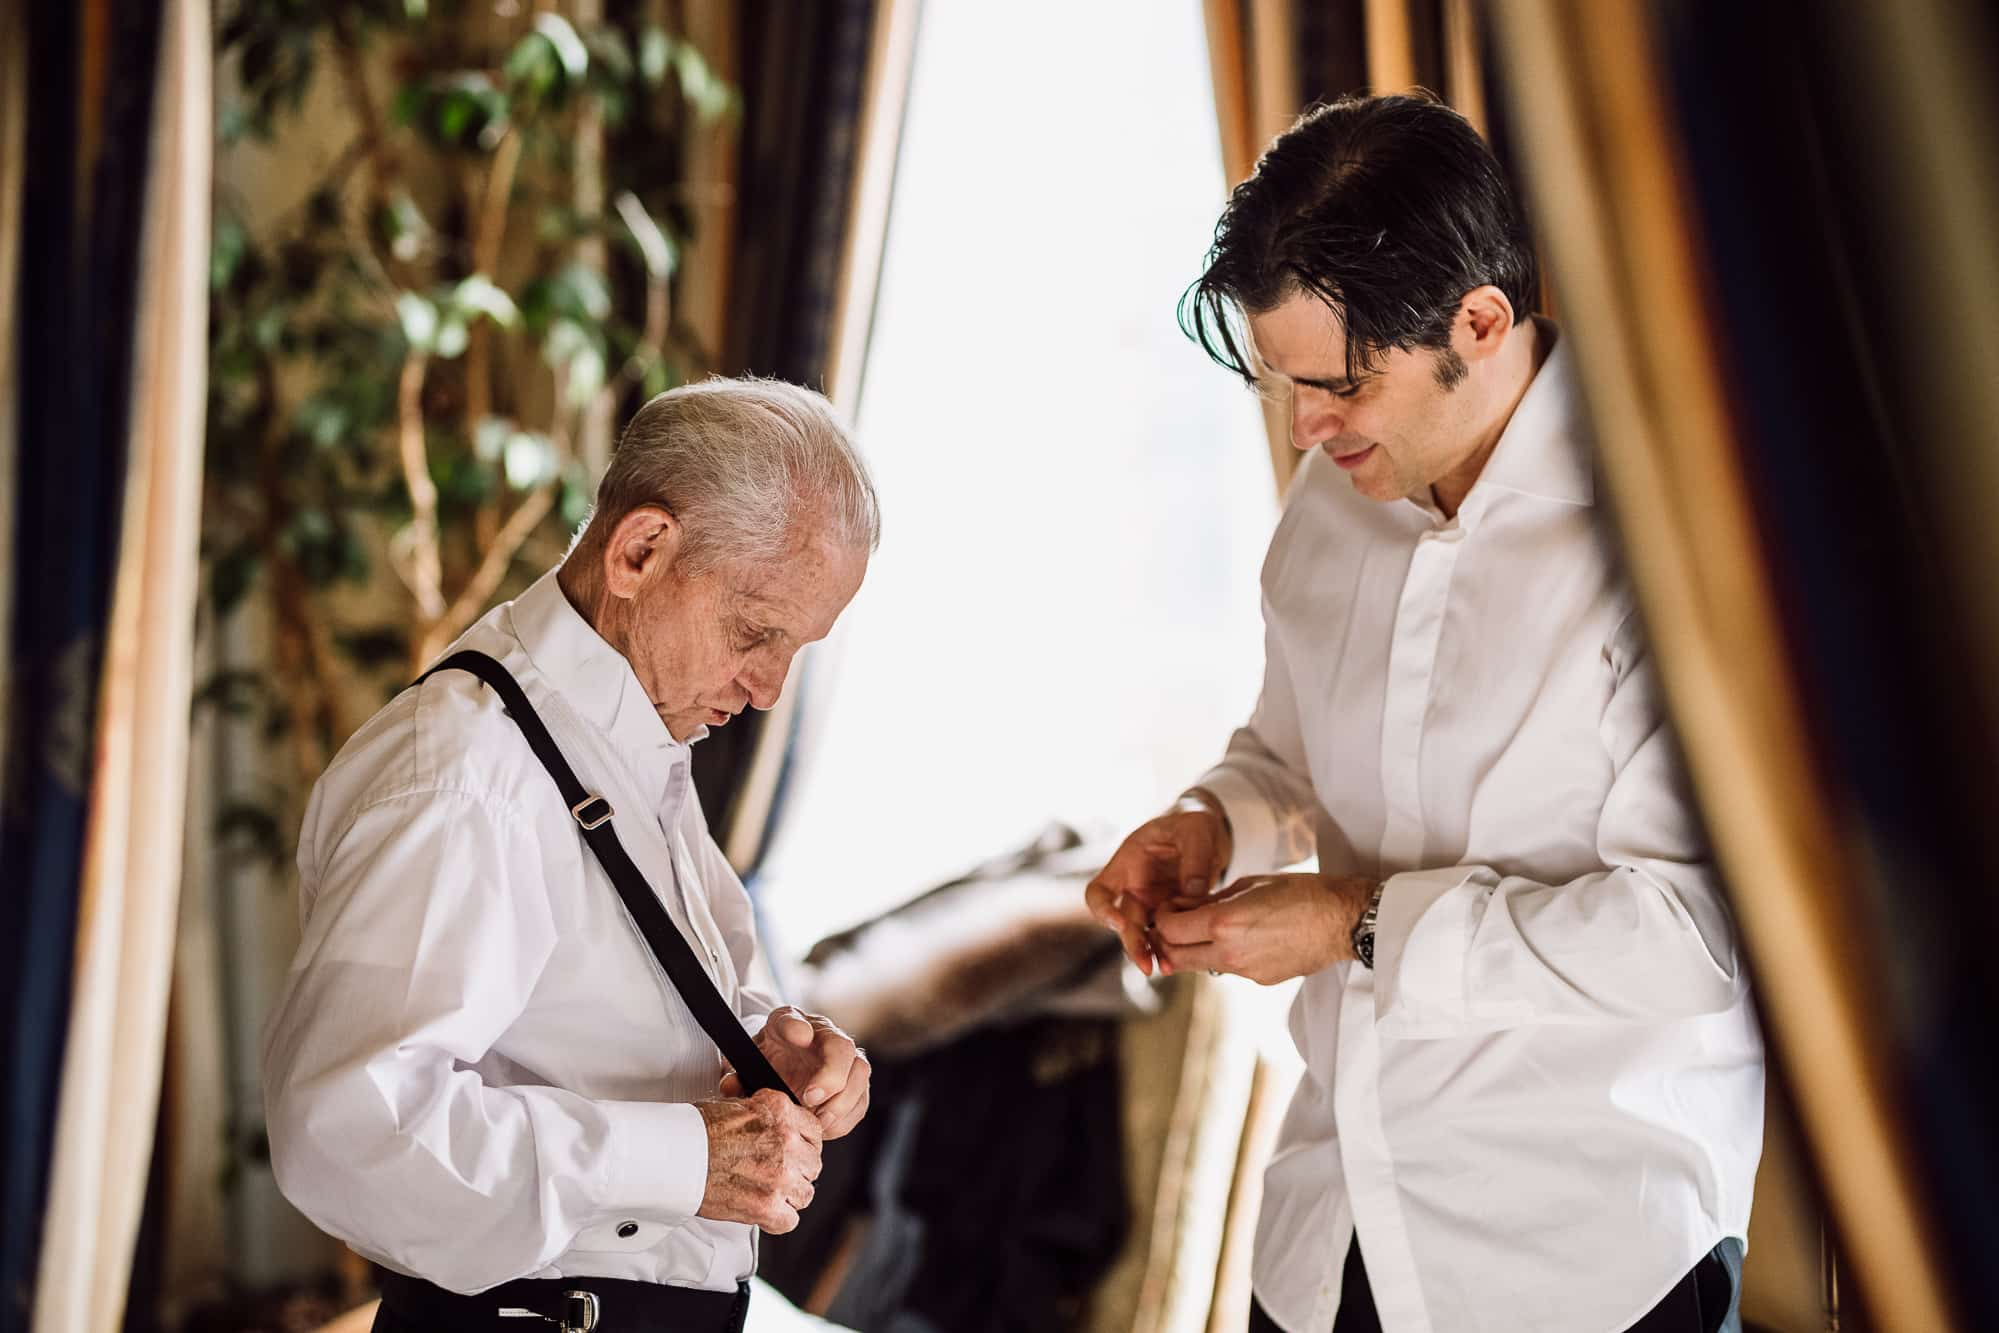 Groom and his dad getting dressed